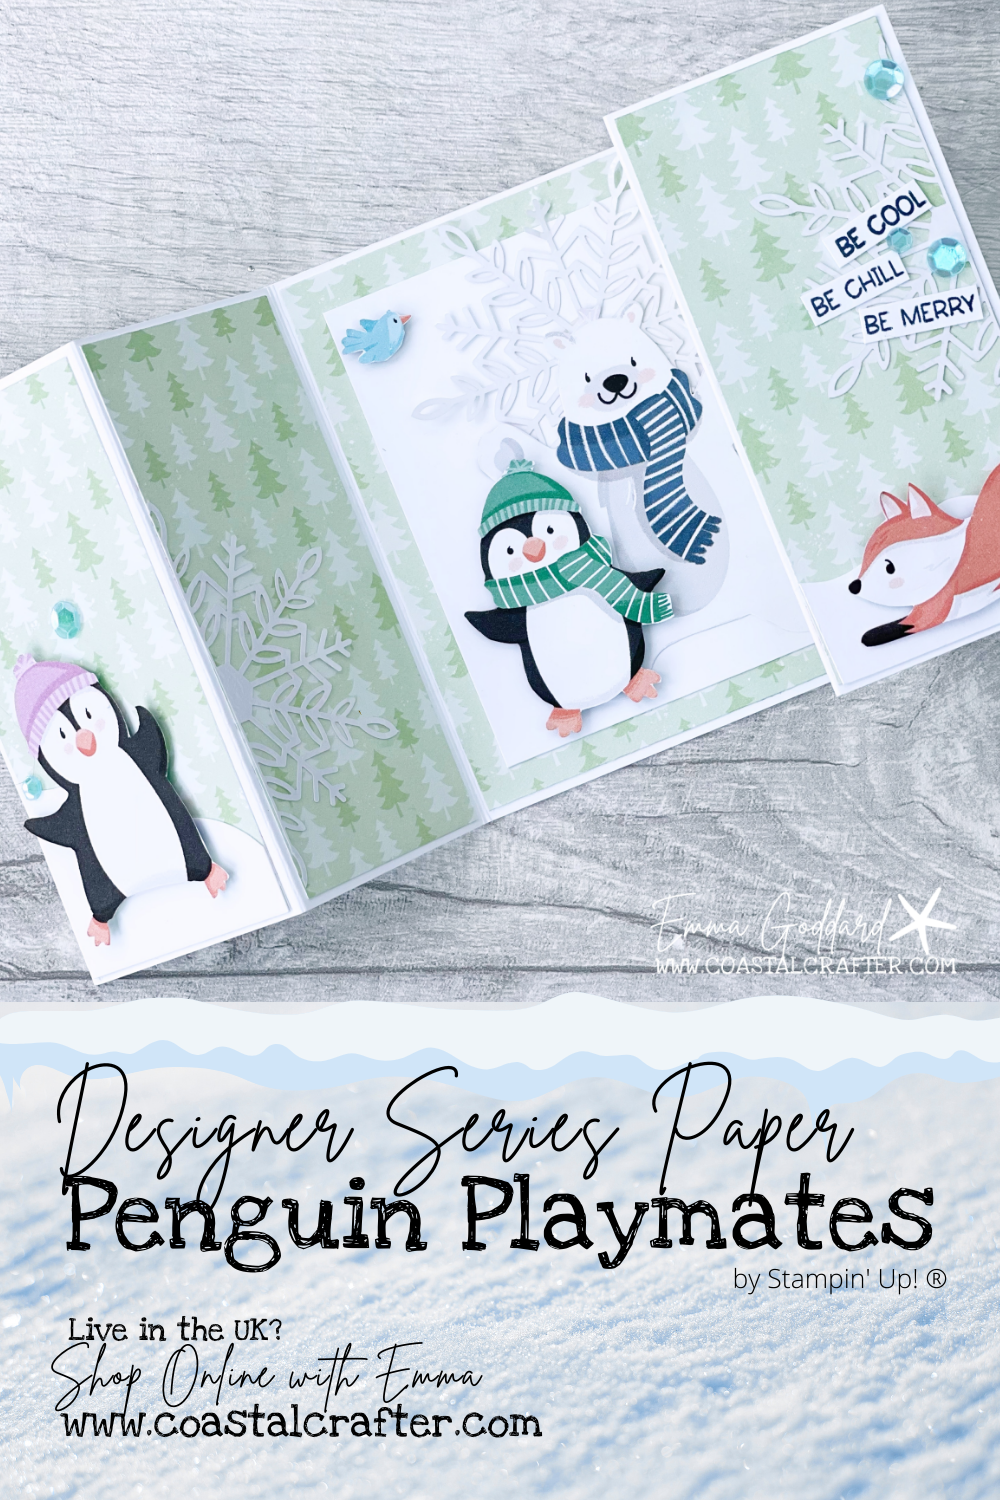 Penguin Playmates - Be Inspired